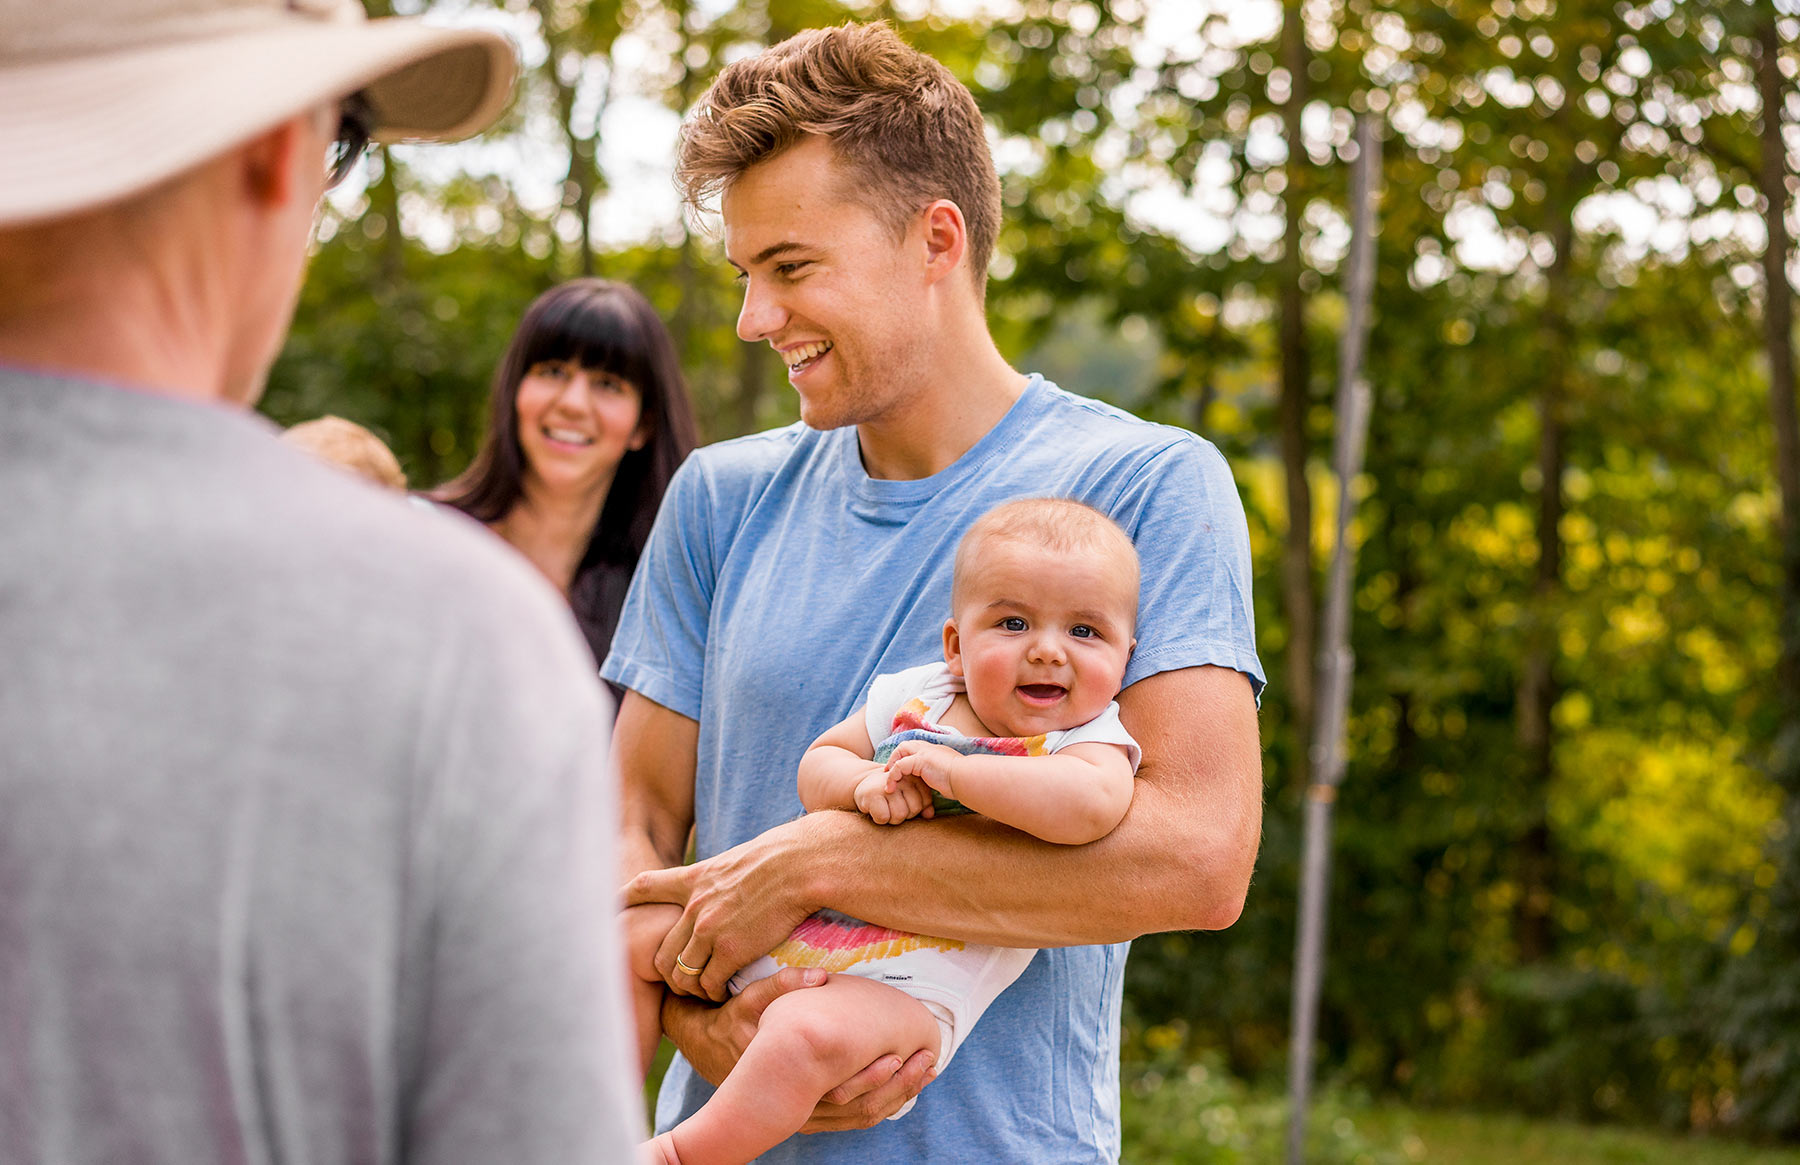 A-young-father-holding-his-baby-at-a-family-event